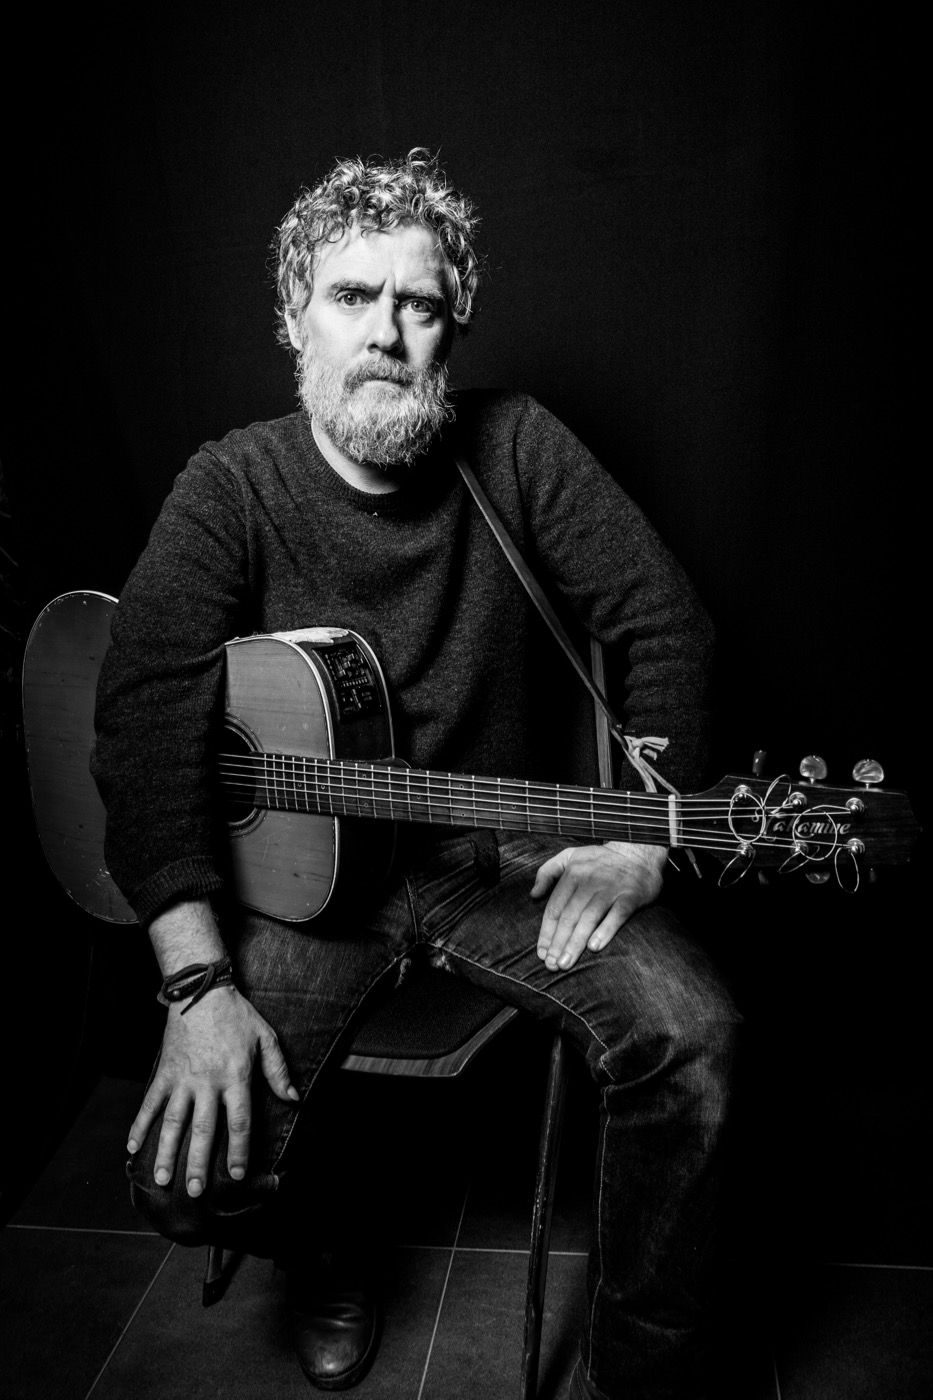 Glen Hansard. Photo by Mikolaj Ruthkowski. Courtesy of the artist. Used with permission.